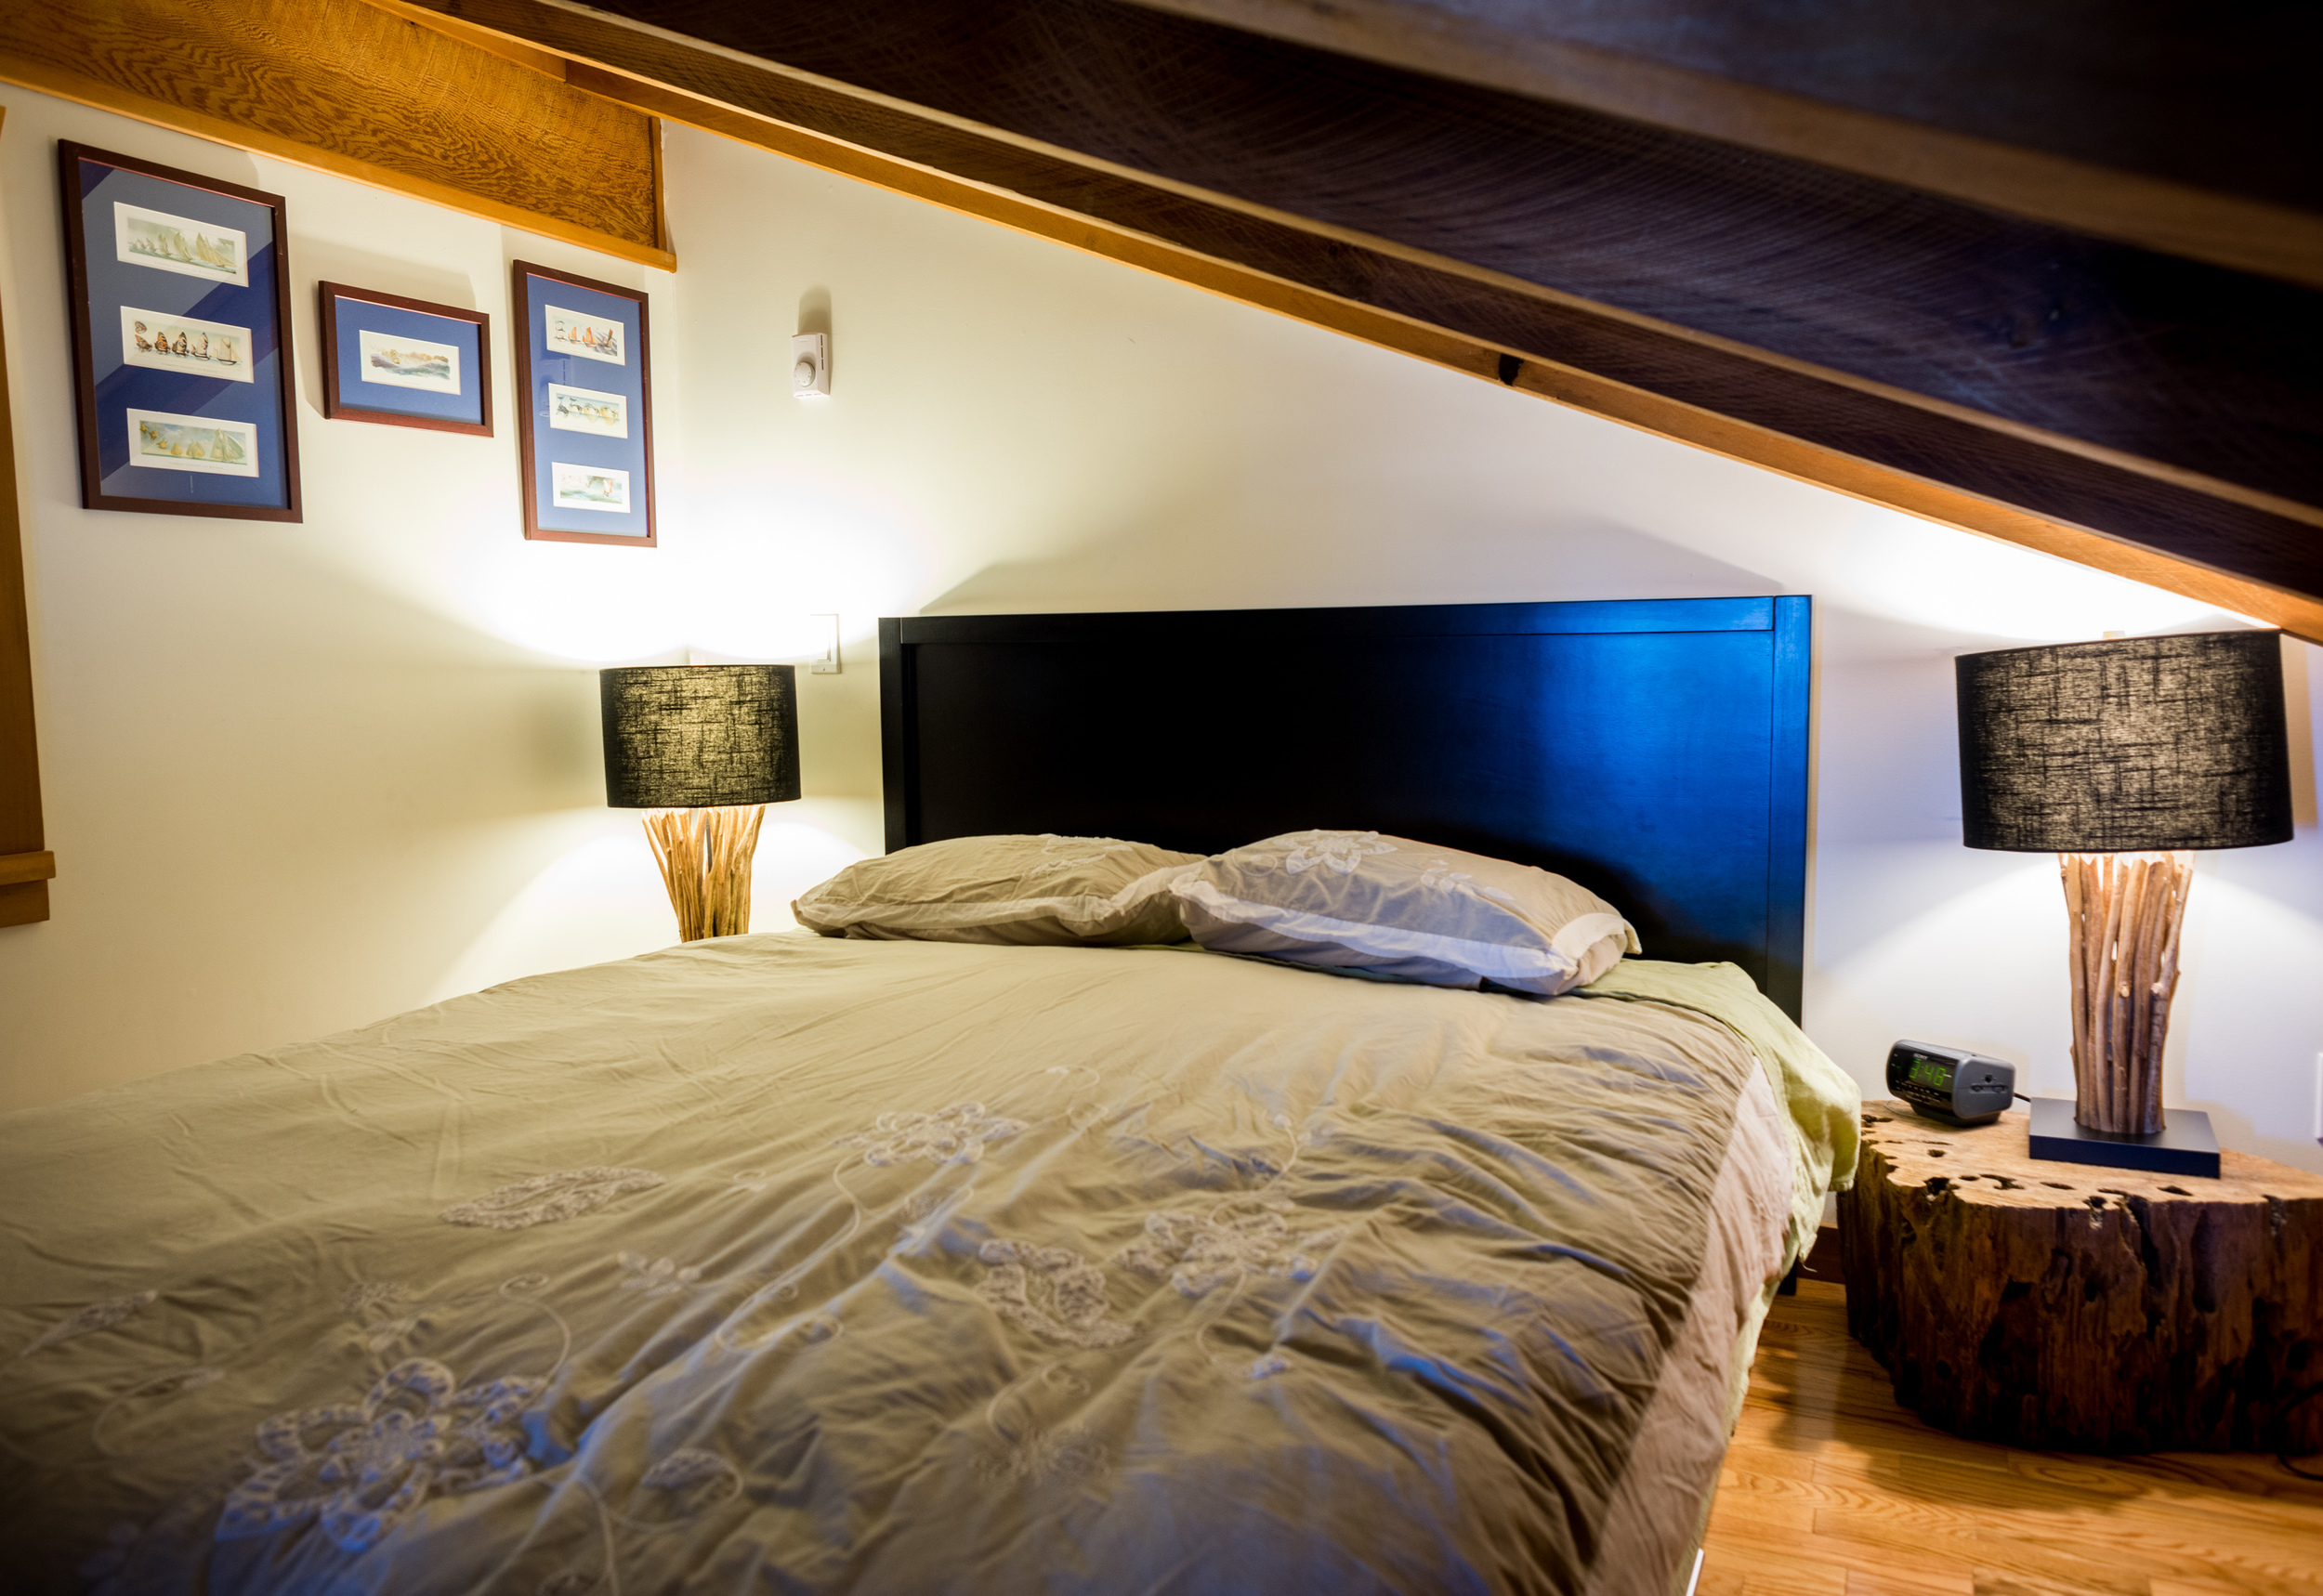 The cozy upstairs bedroom